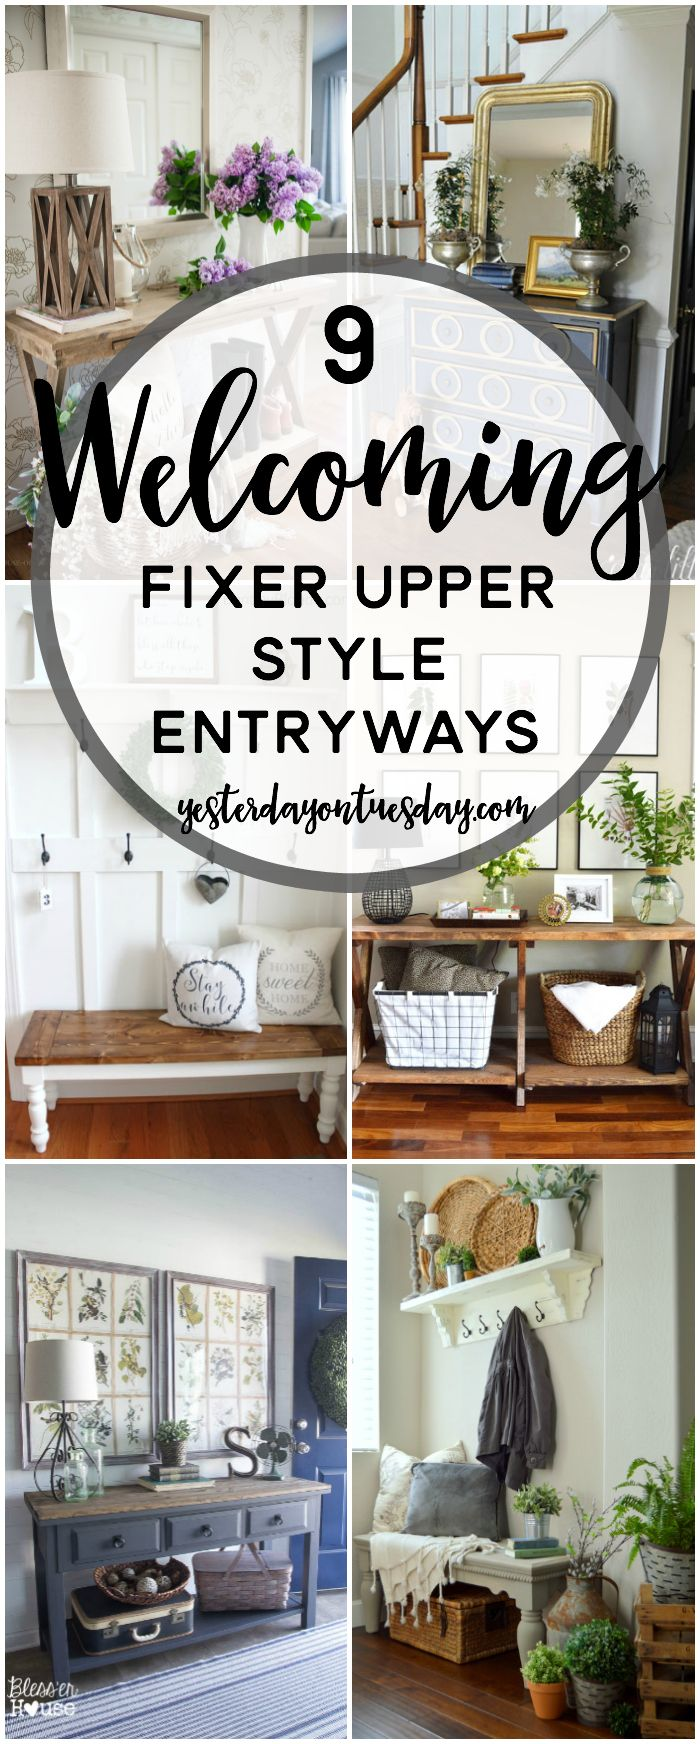 A Dozen Fixer Upper Style Kitchen Decor Projects | Yesterday On Tuesday